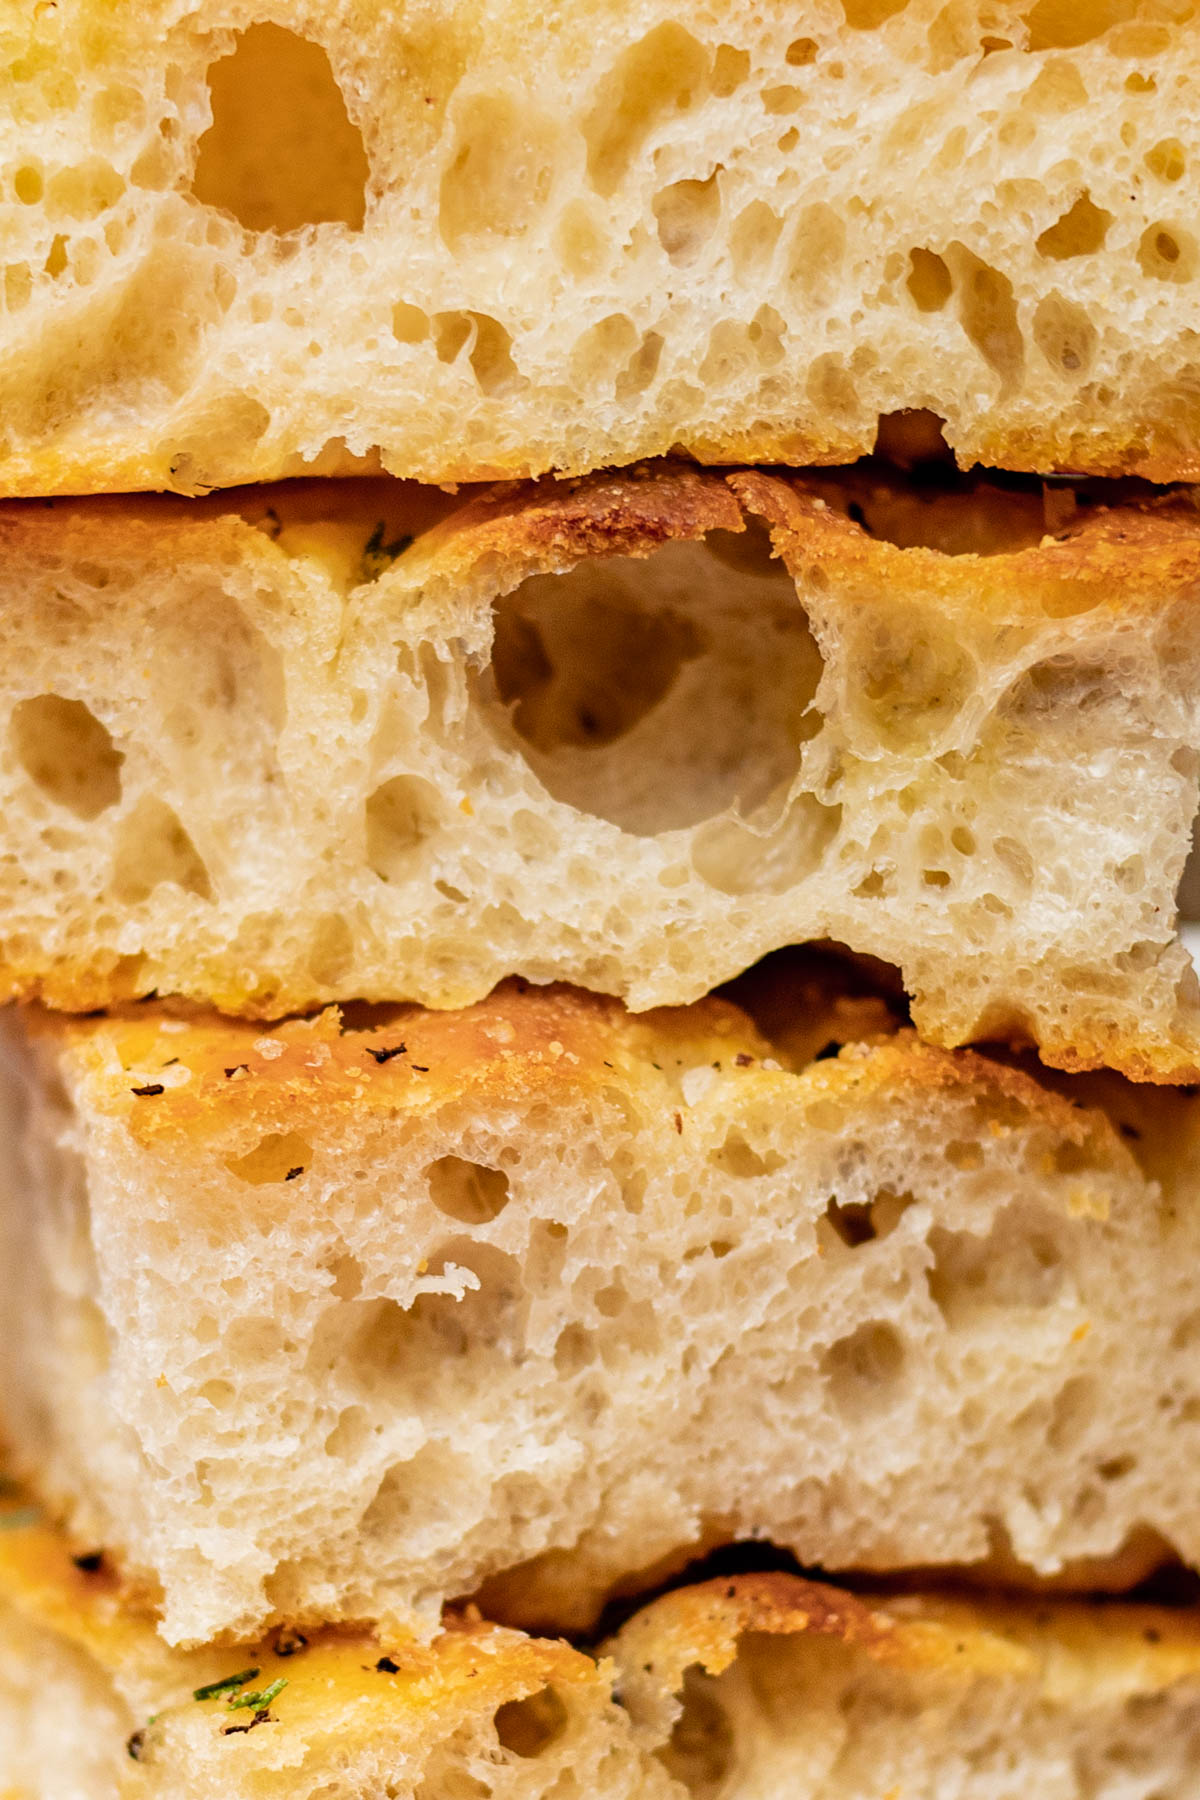 Close up showing interior crumb (large bubbles).